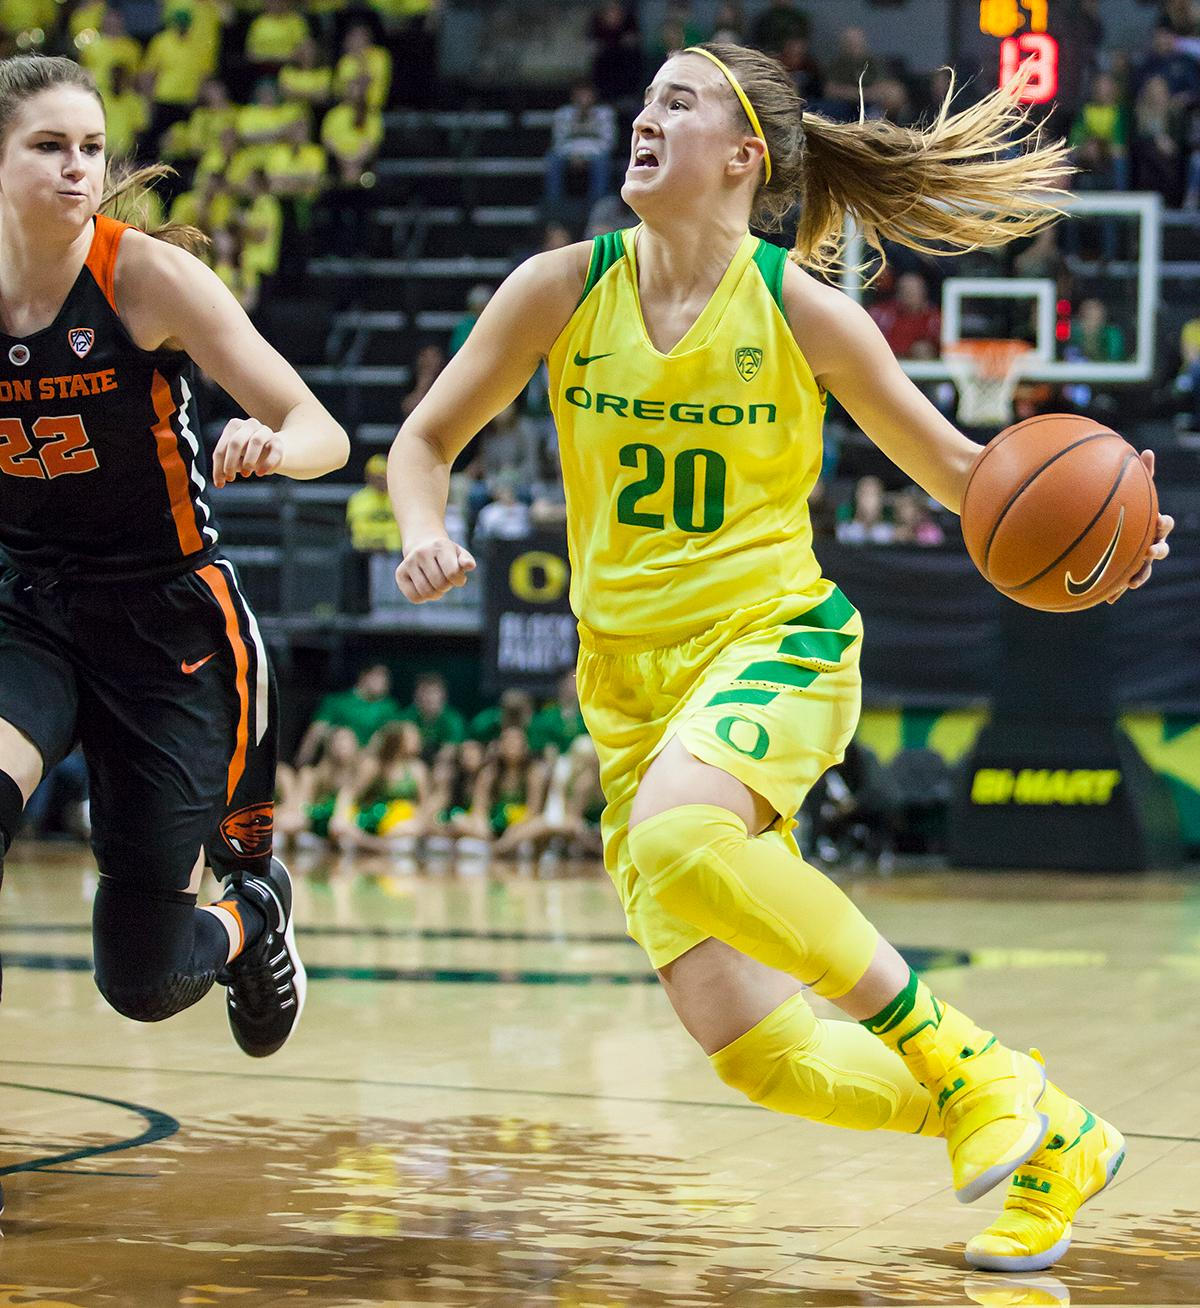 Oregon guard Sabrina Ionescu (#20) dribbles past Oregon State guard Kat Tudor (#22). The Oregon Ducks lost 40 to 43 against the Oregon State Beavers after a tightly matched 4th quarter. Photo by Ben Lonergan, Oregon News Lab